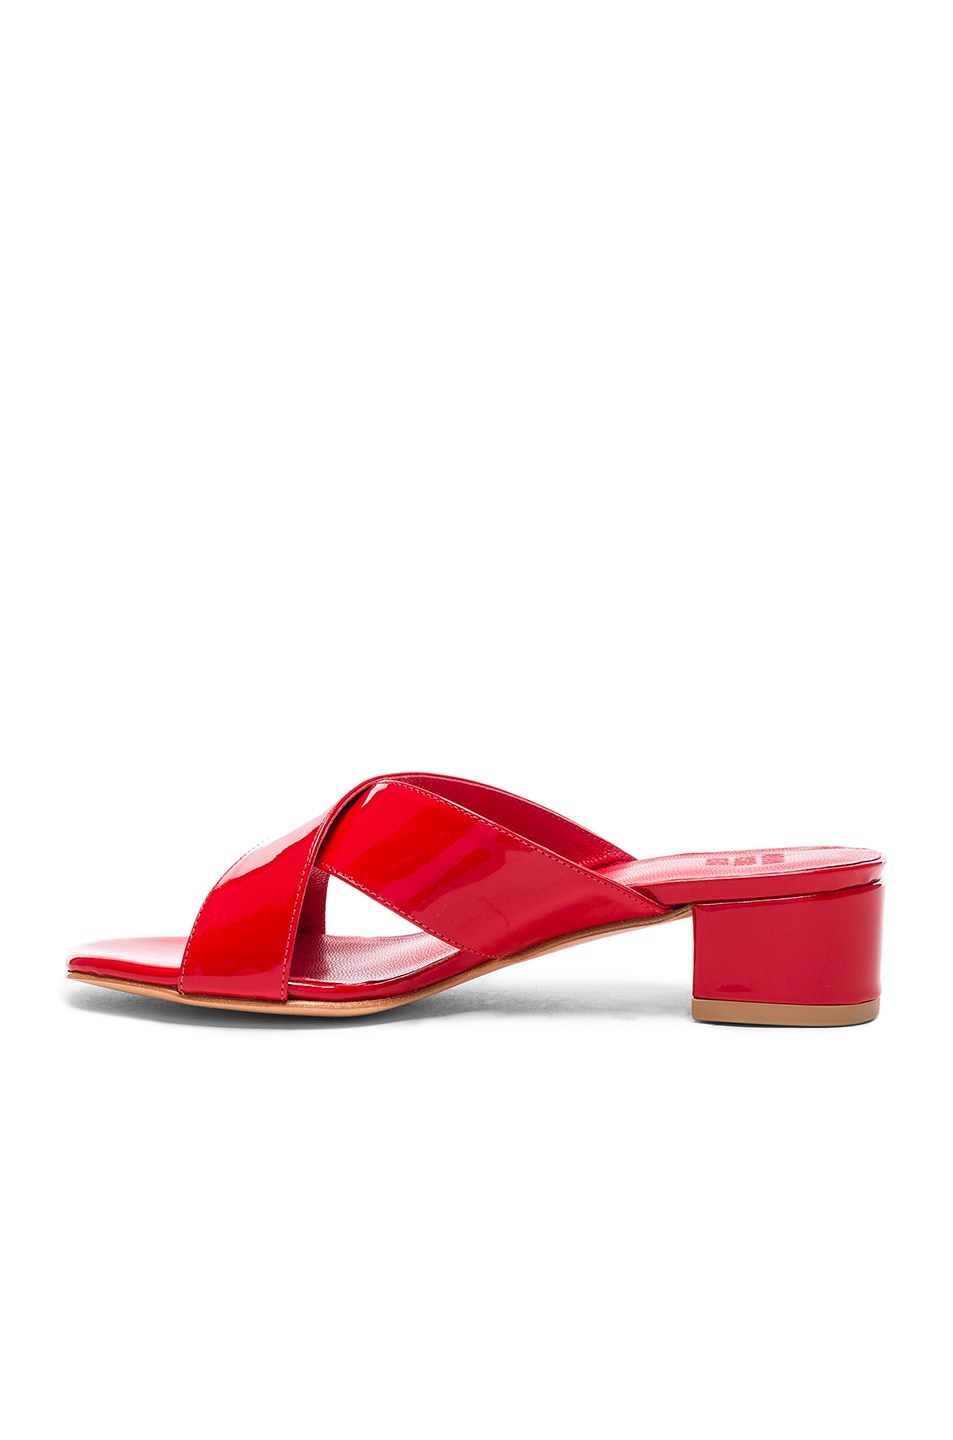 Image 5 of Maryam Nassir Zadeh Patent Leather Lauren Slide Heels in Poppy Patent